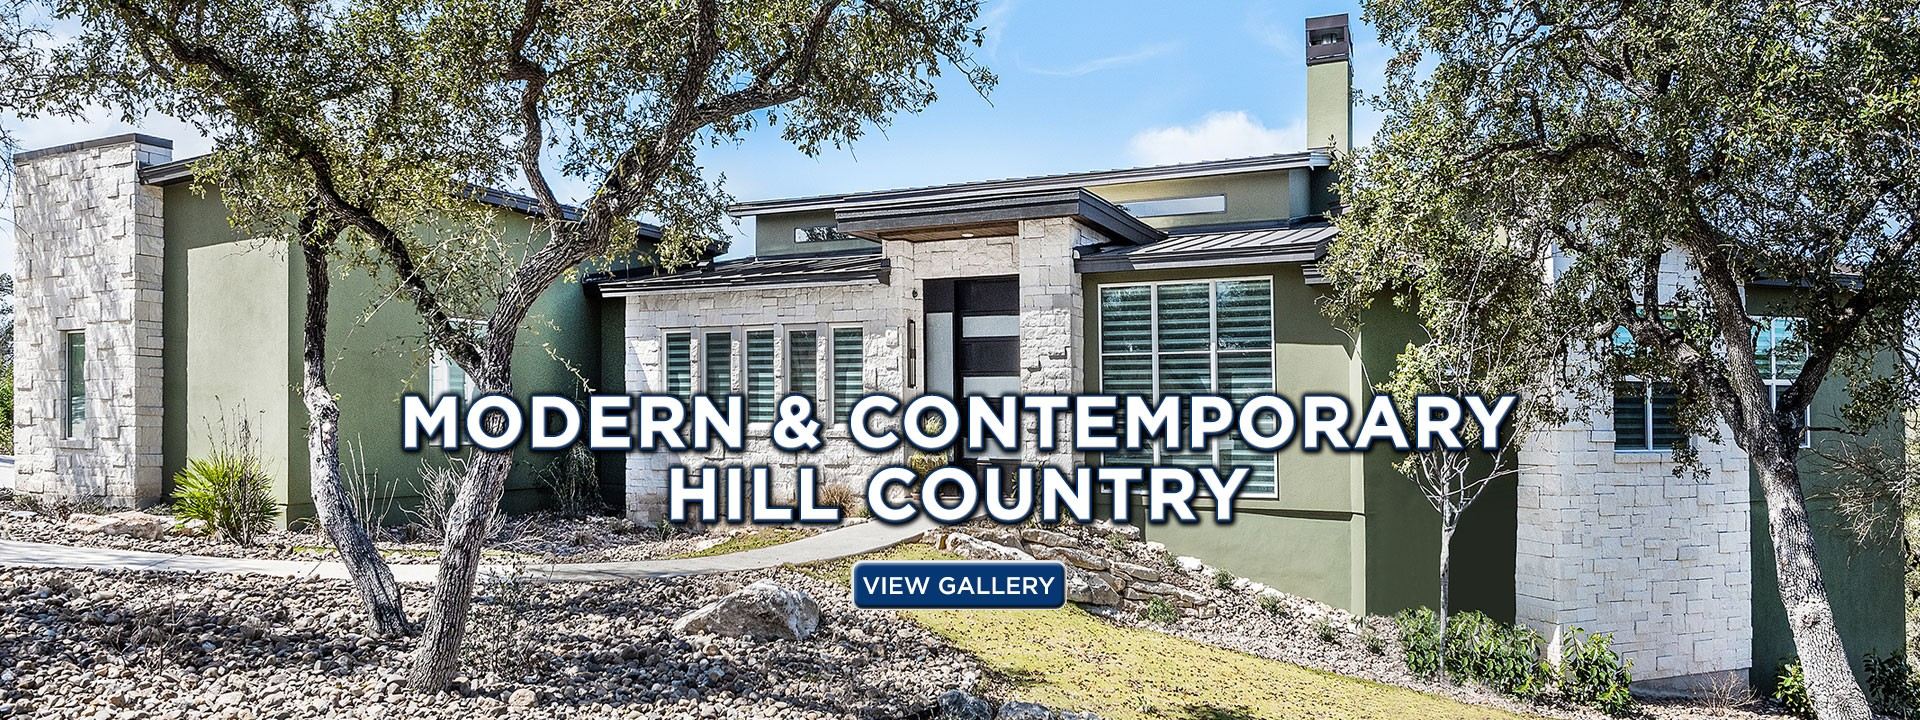 Modern & Contemporary Hill Country